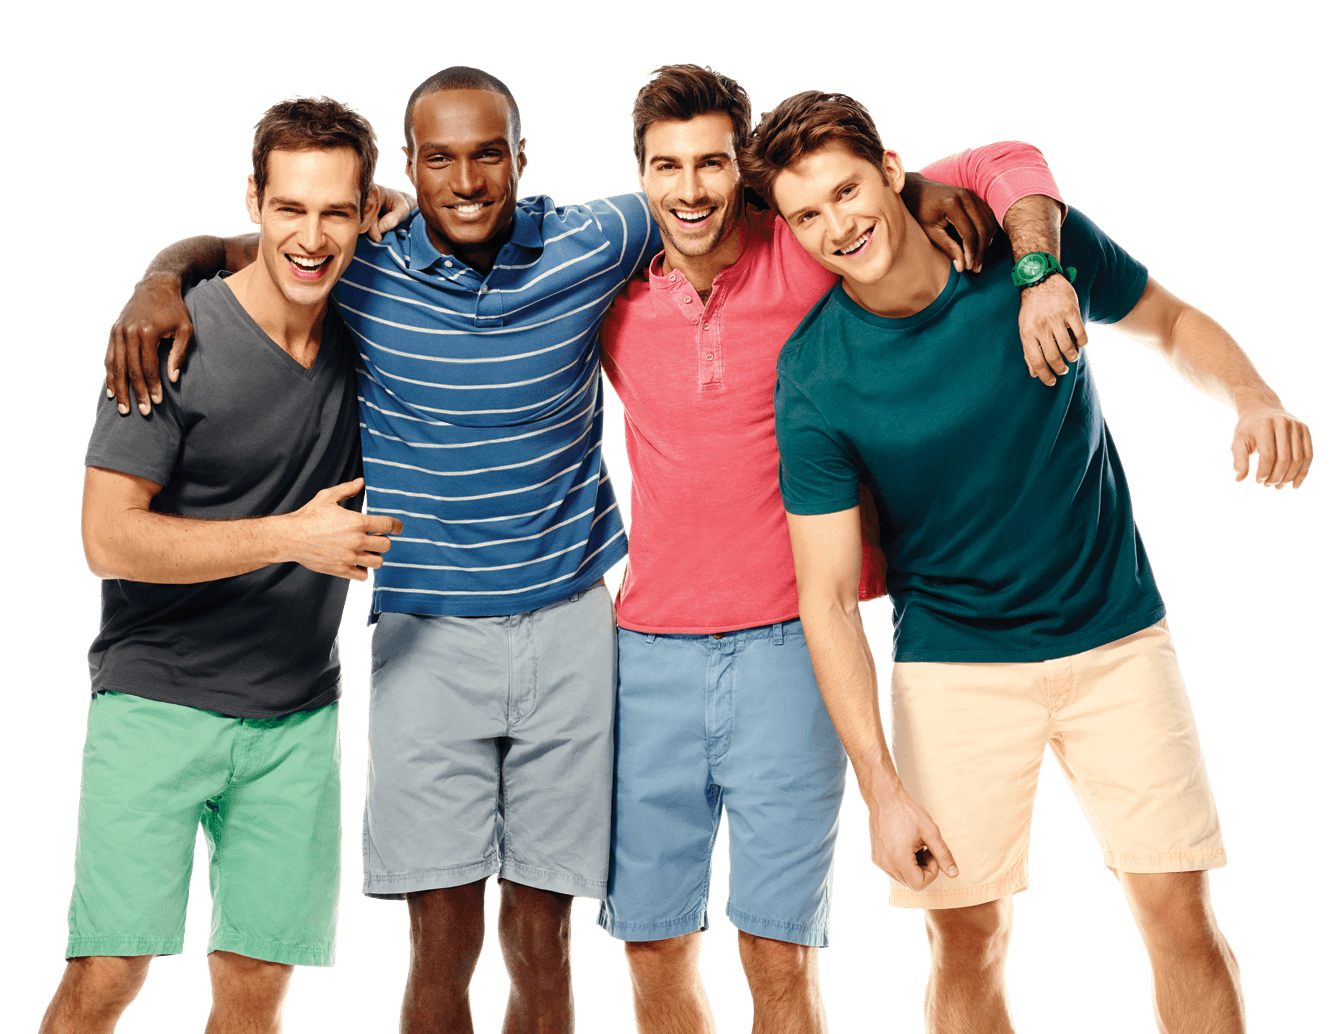 Group Of Men PNG - 44648